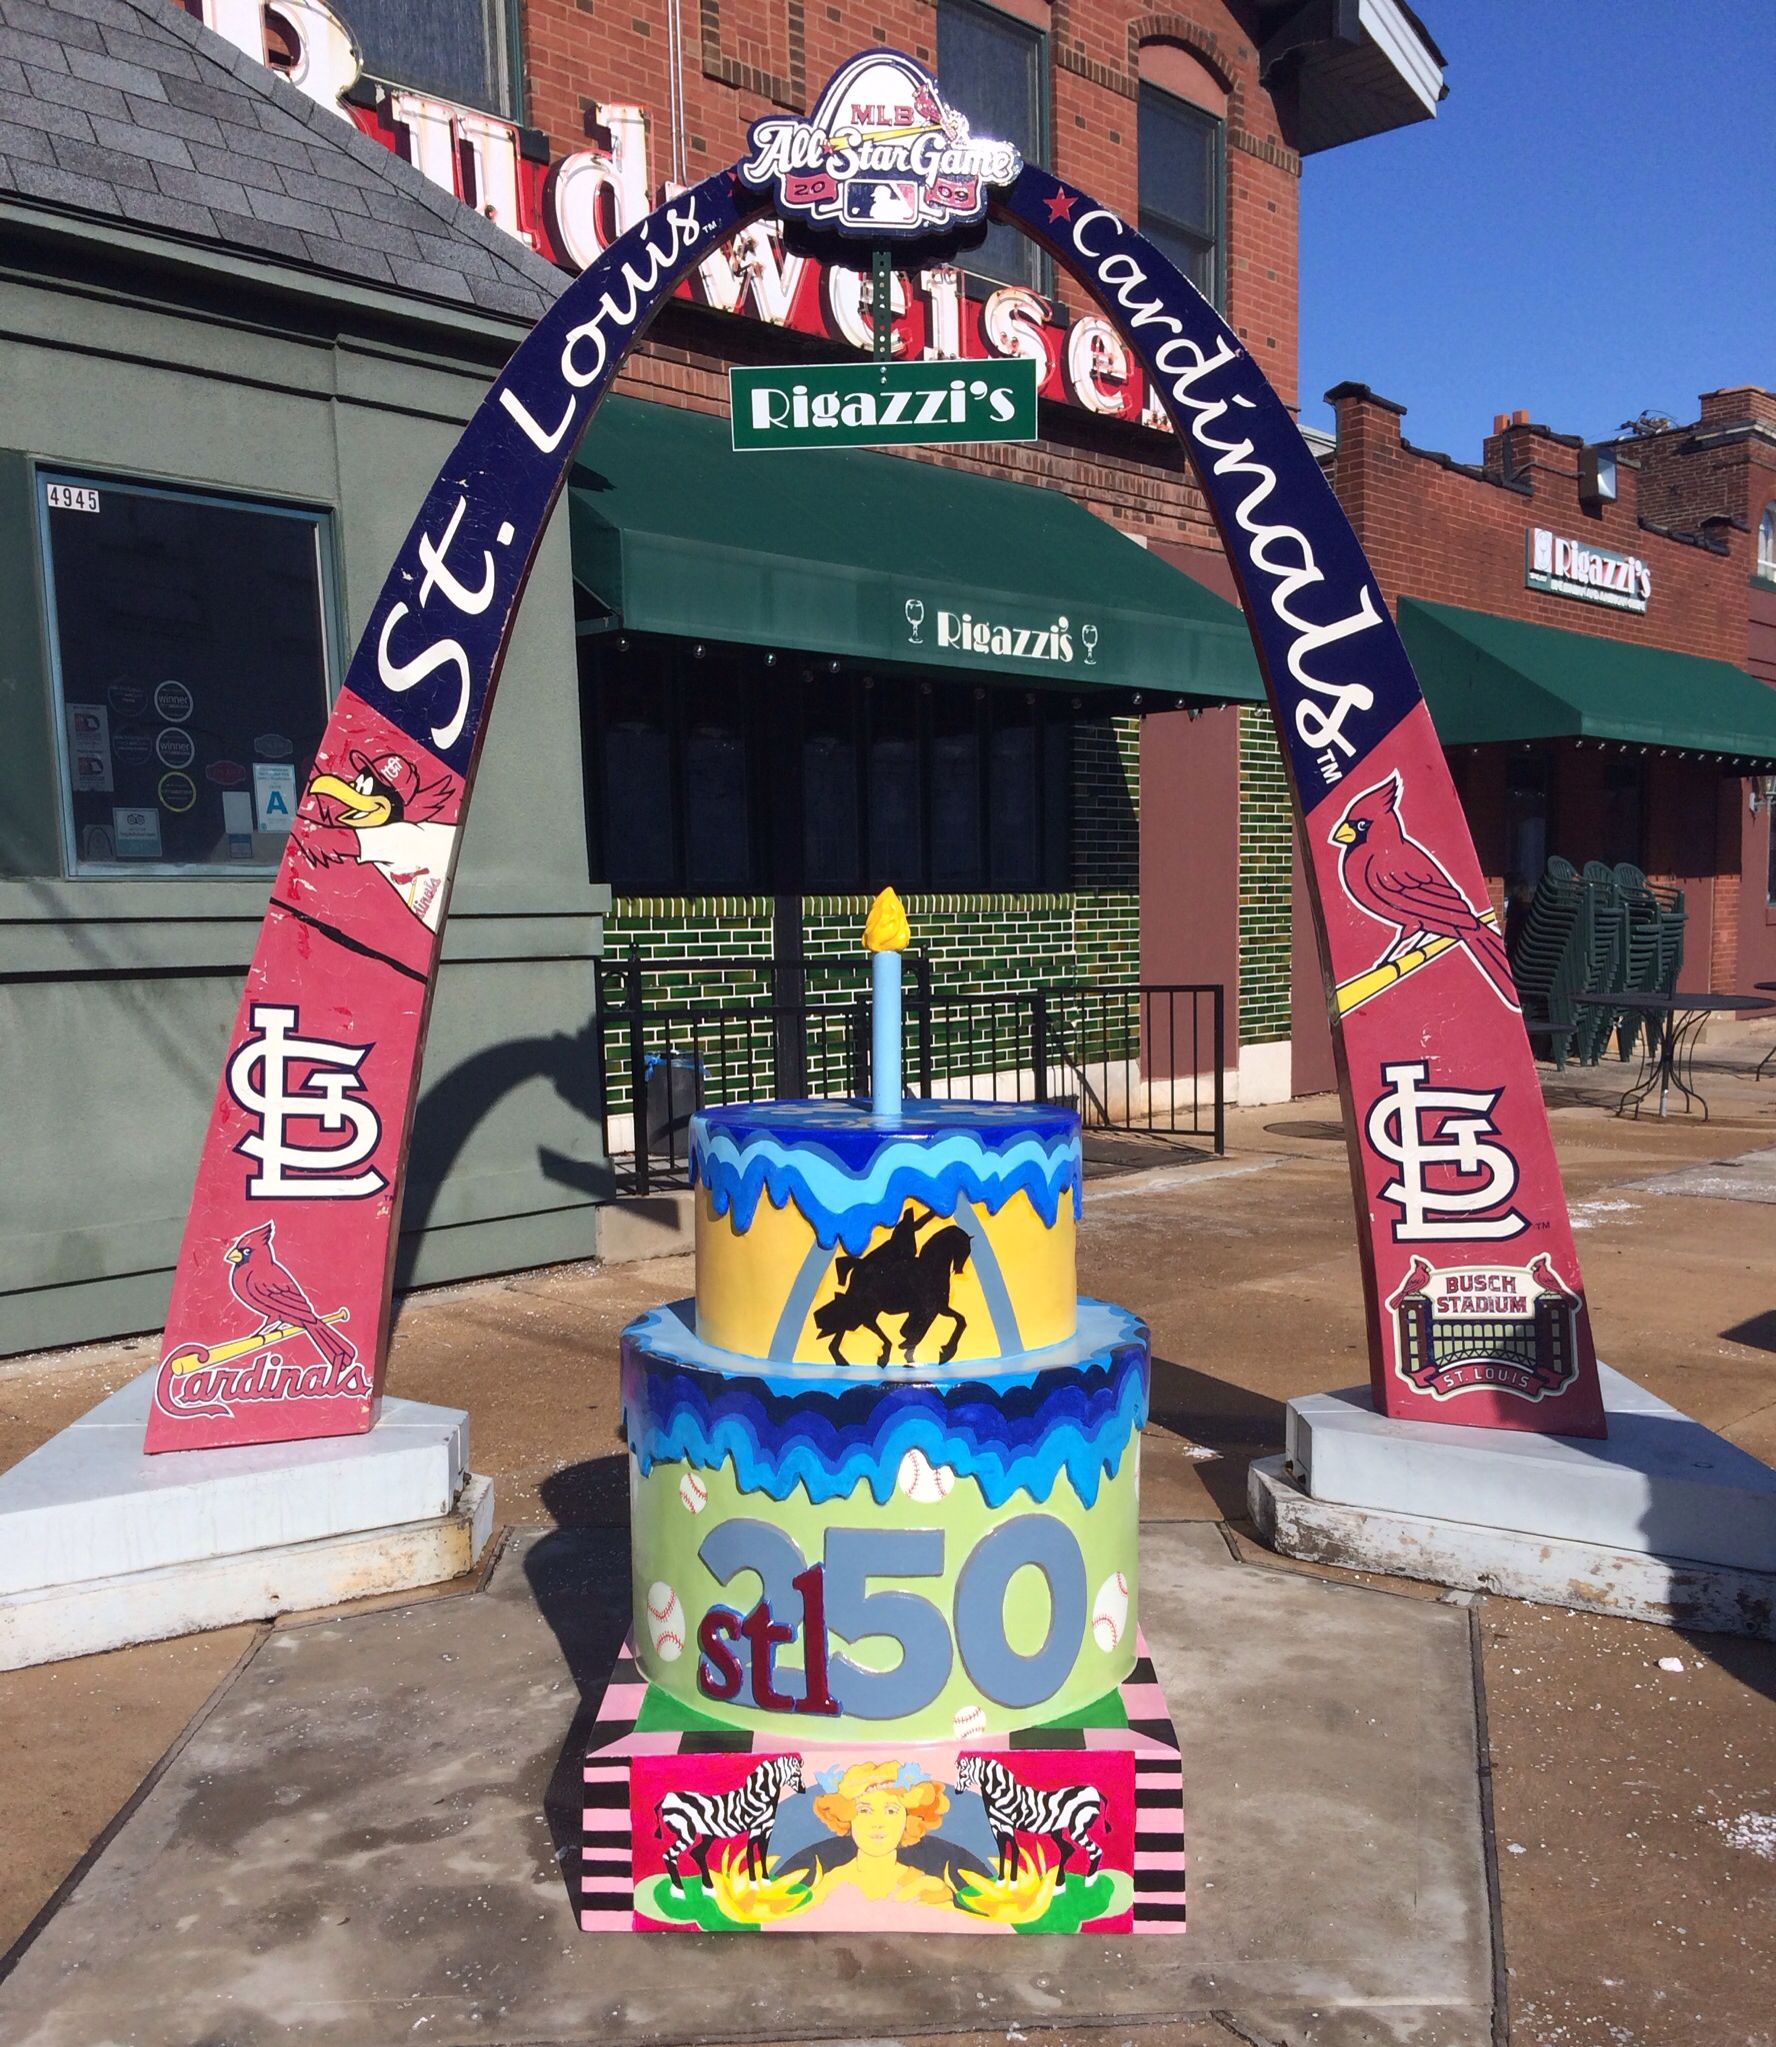 Rigazzis The top 250 businesses in St Louis received a birthday